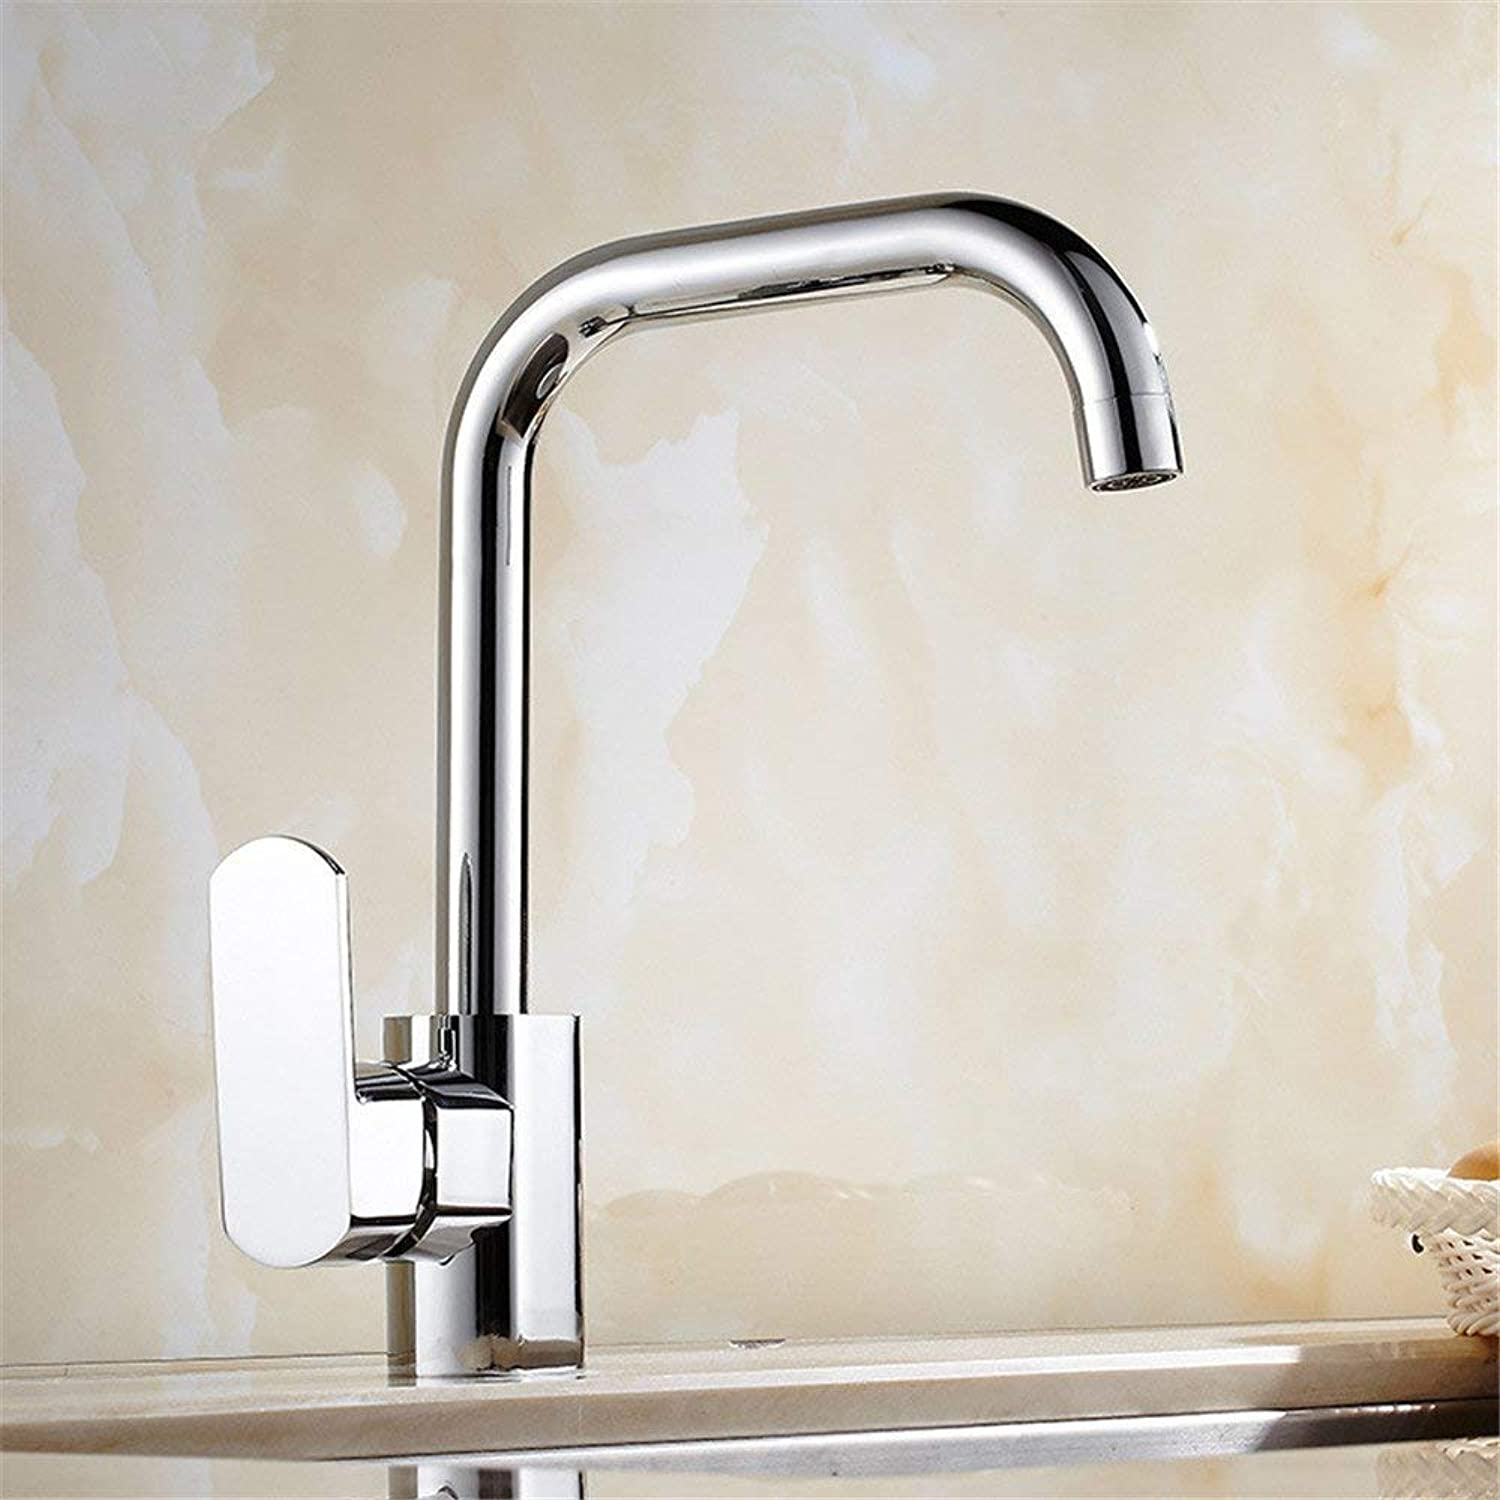 SEEKSUNG Kitchen Sink Taps The Modern All-Brass Chrome Plated Faucet Kitchen Faucet Swivel Faucet Sink Mixer Basin Mixer Taps to Wash Dishes Large Elbow Faucet Single Lever Kitchen Sink Mixer